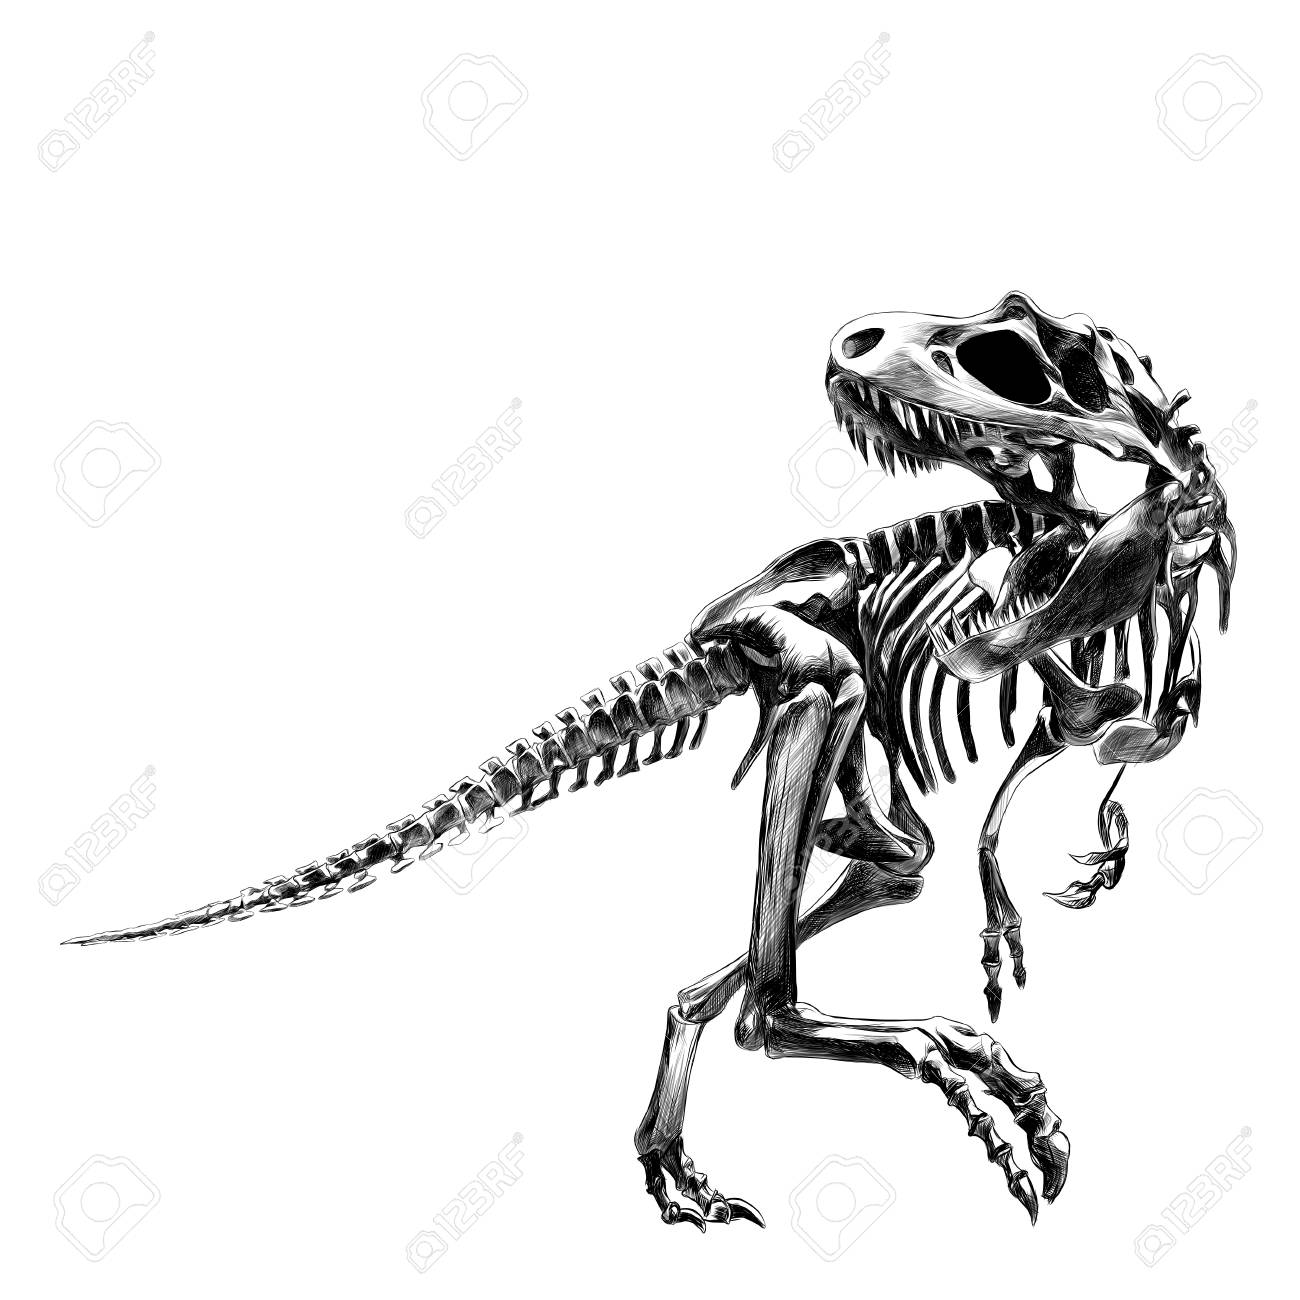 Dinosaur skeleton Tyrannosaurus, bone, black and white drawing,